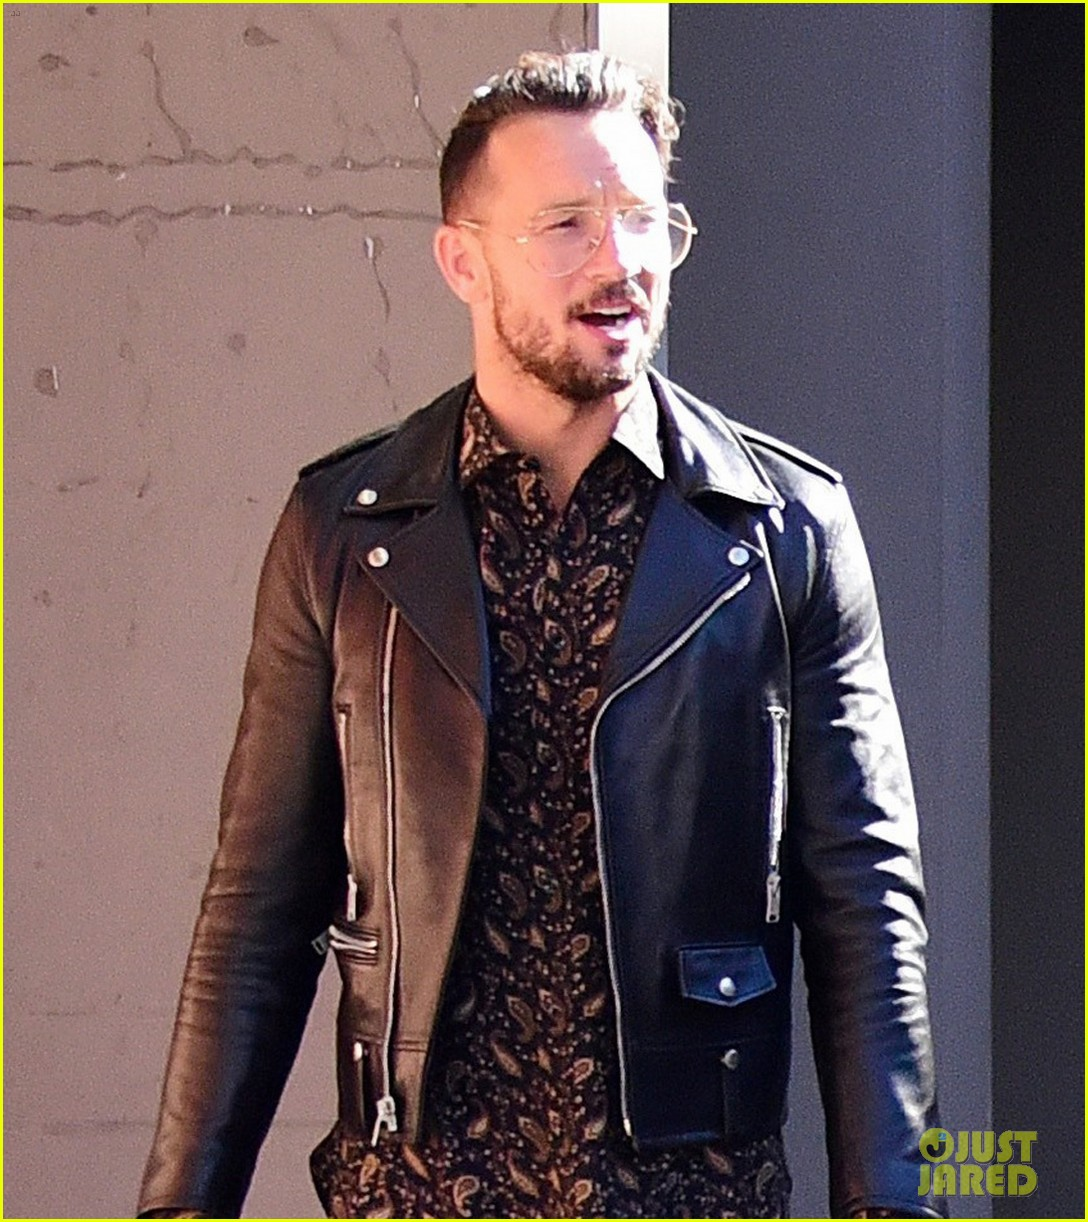 Justin Bieber S Pastor Carl Lentz Is Ridiculously Hot Photos Photo 3934675 Carl Lentz Justin Bieber Pictures Just Jared